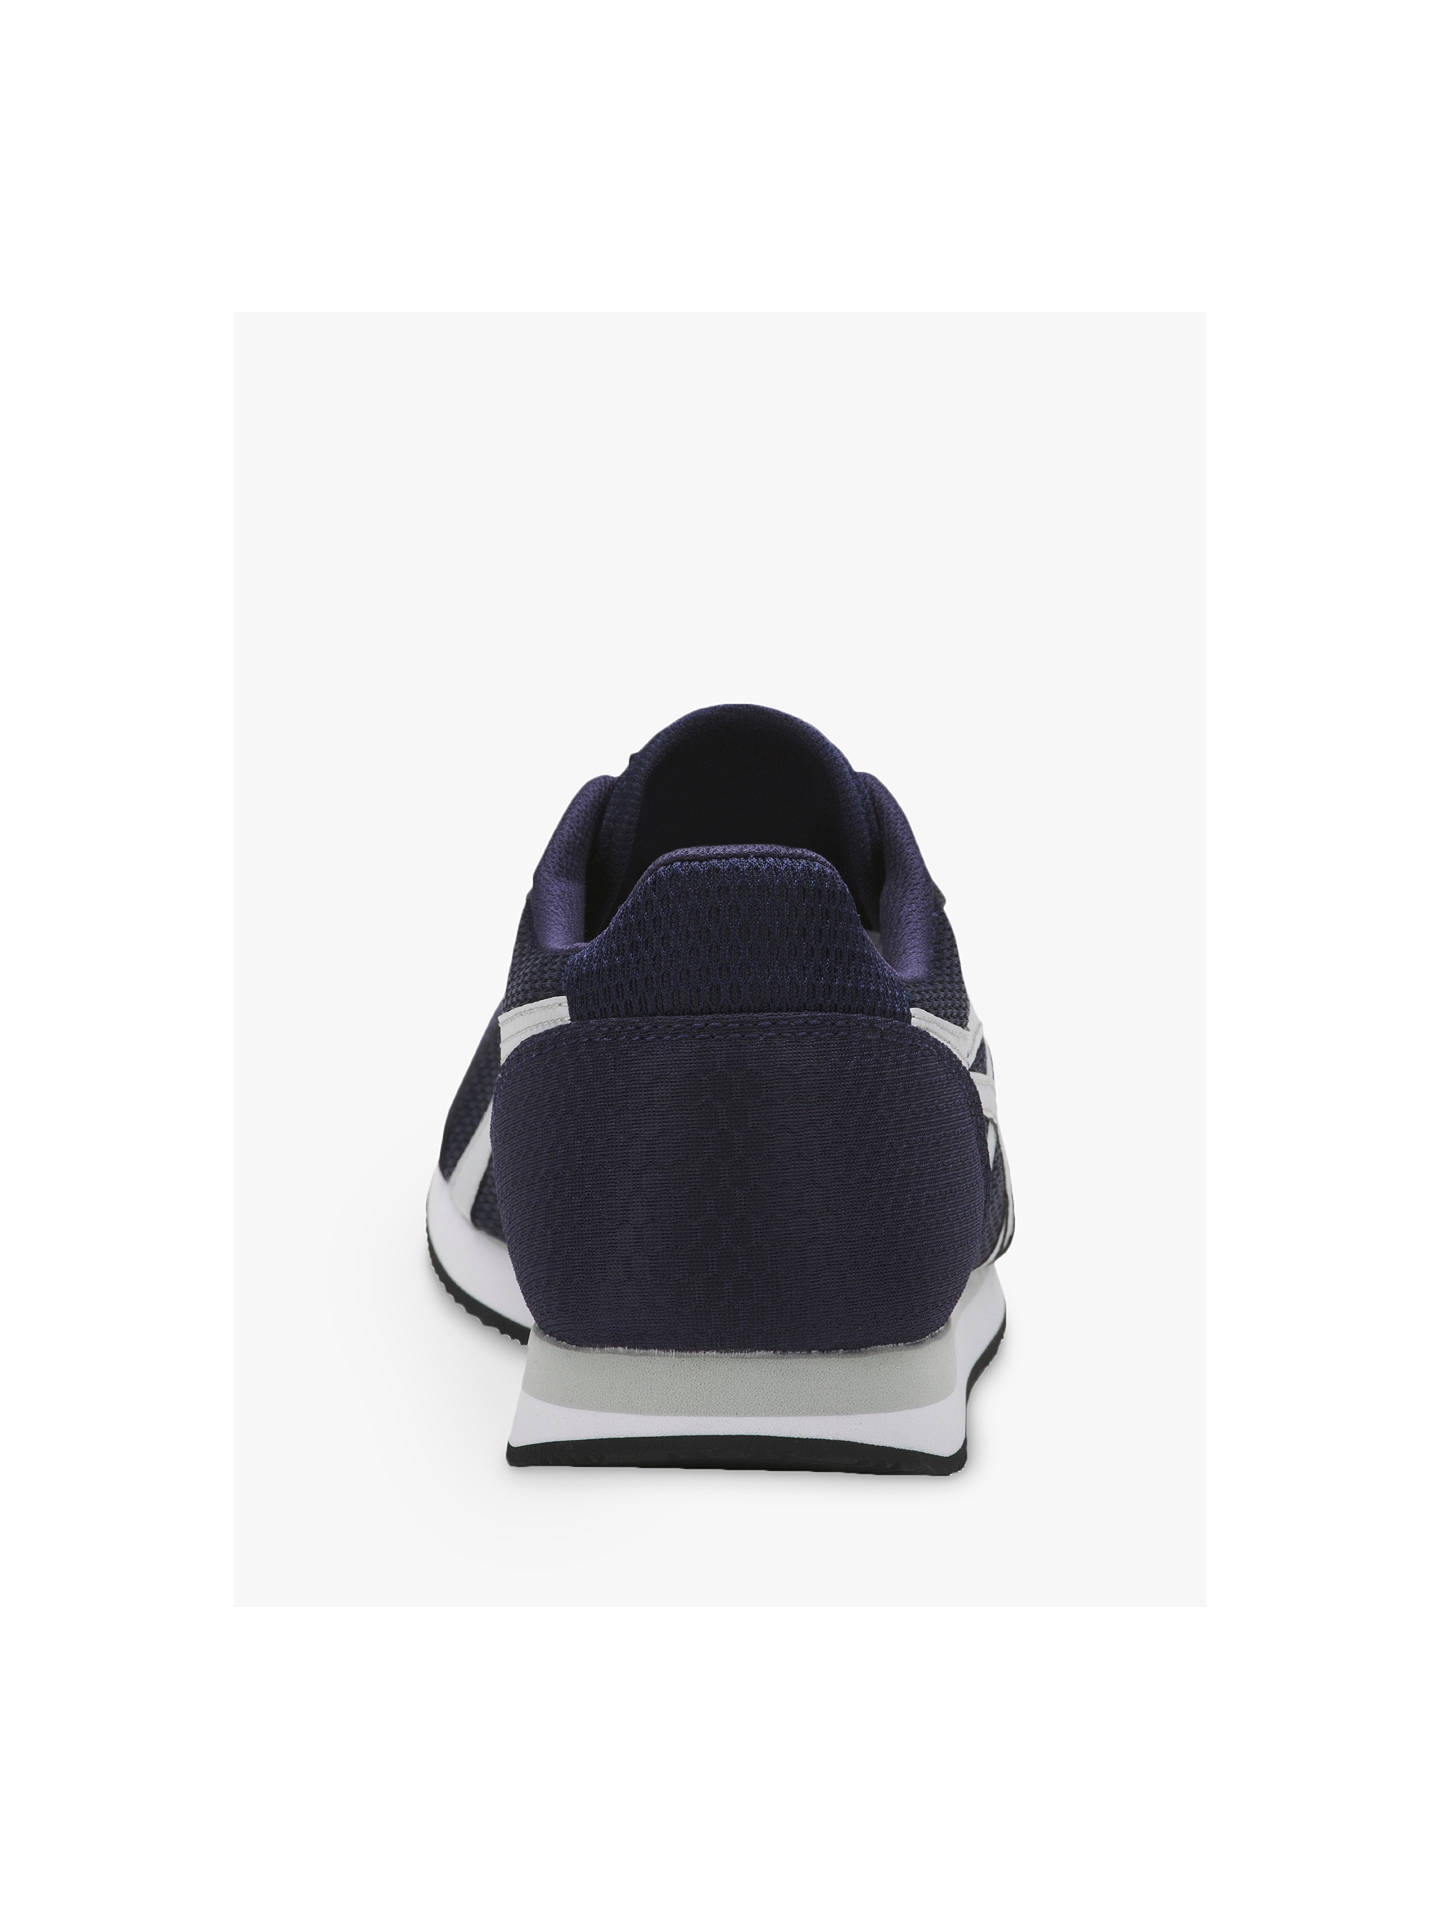 Buy ASICSTIGER Curreo II Trainers, Peacoat/Glacier Grey, 6 Online at johnlewis.com